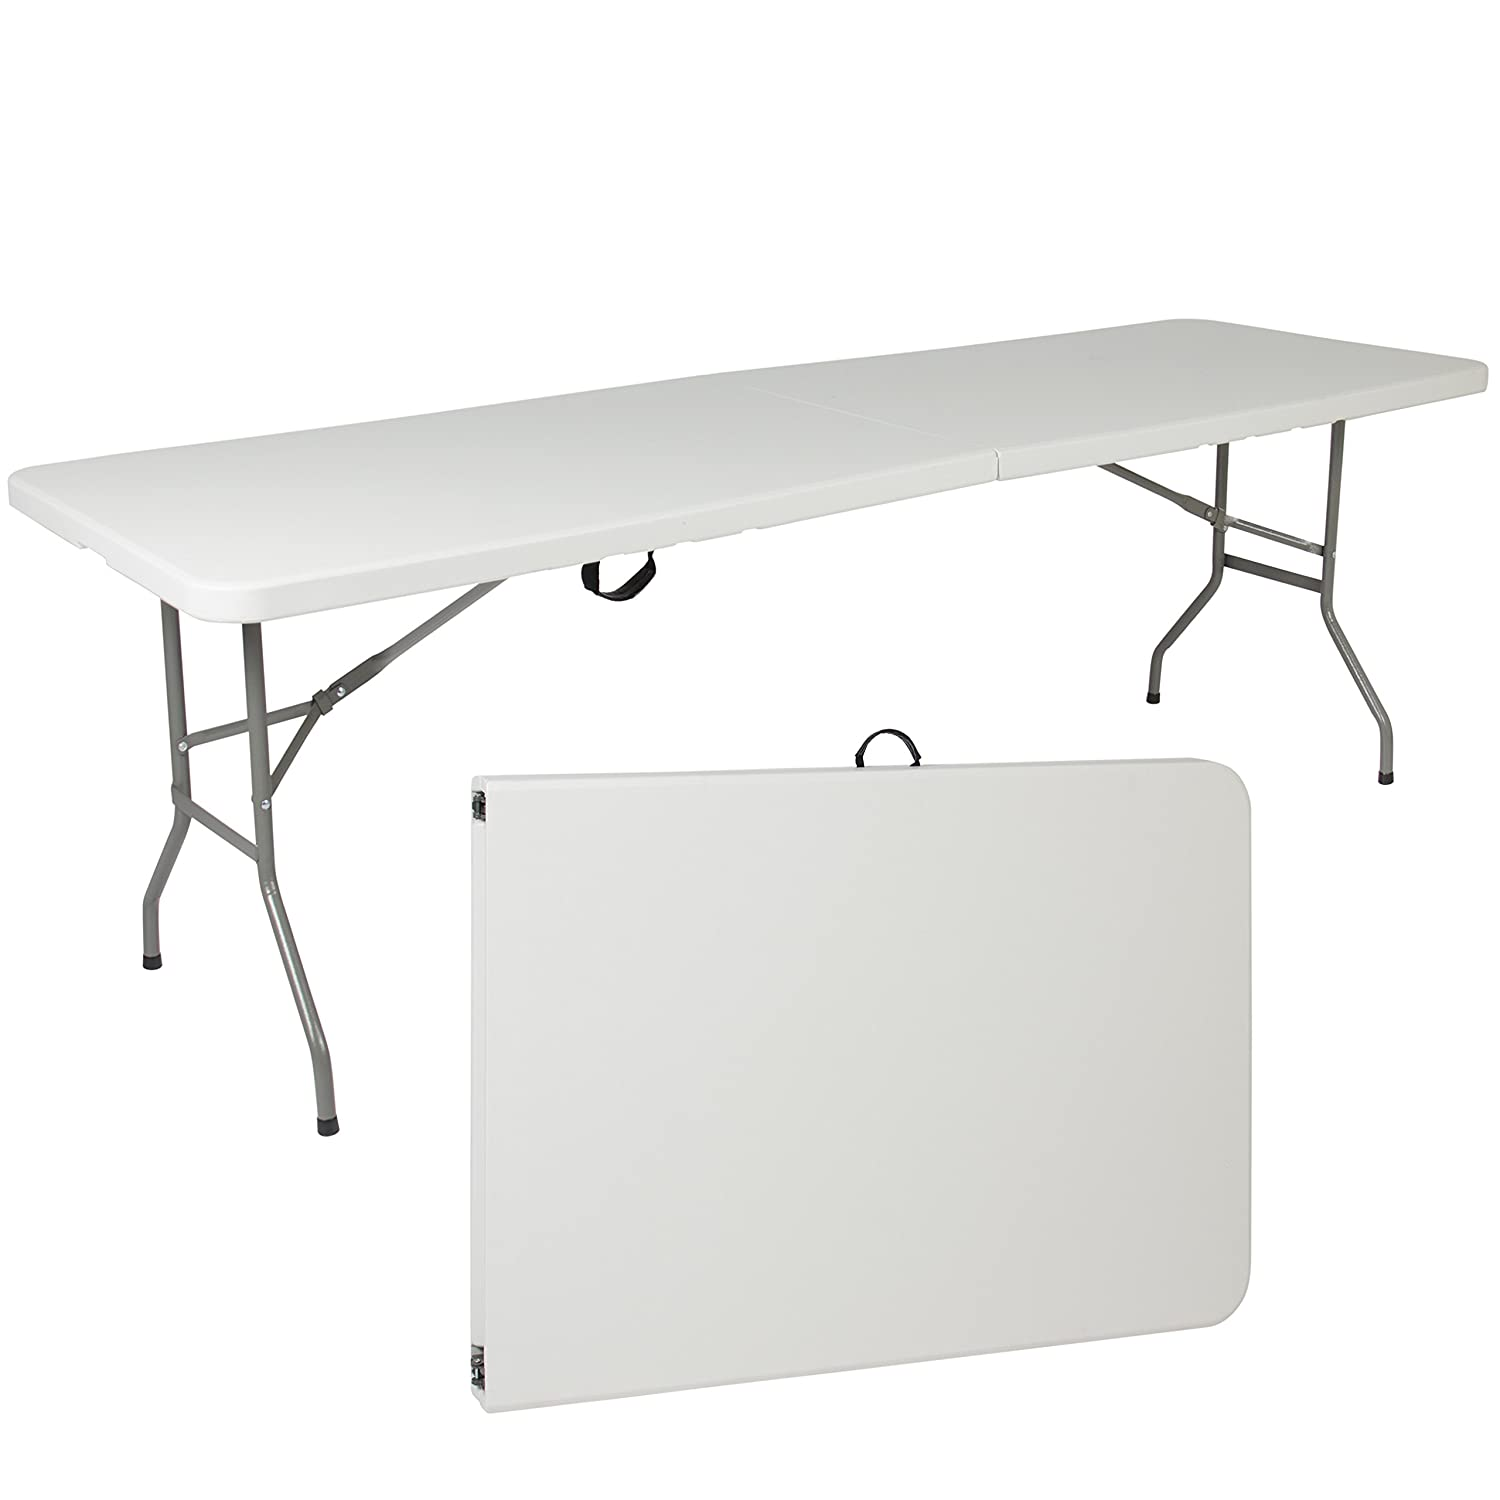 Amazon.com : Best Choice Products 8ft Folding Portable Plastic Table For  Indoor, Outdoor, Picnic, Party W/ Handle U0026 Lock   White : Garden U0026 Outdoor